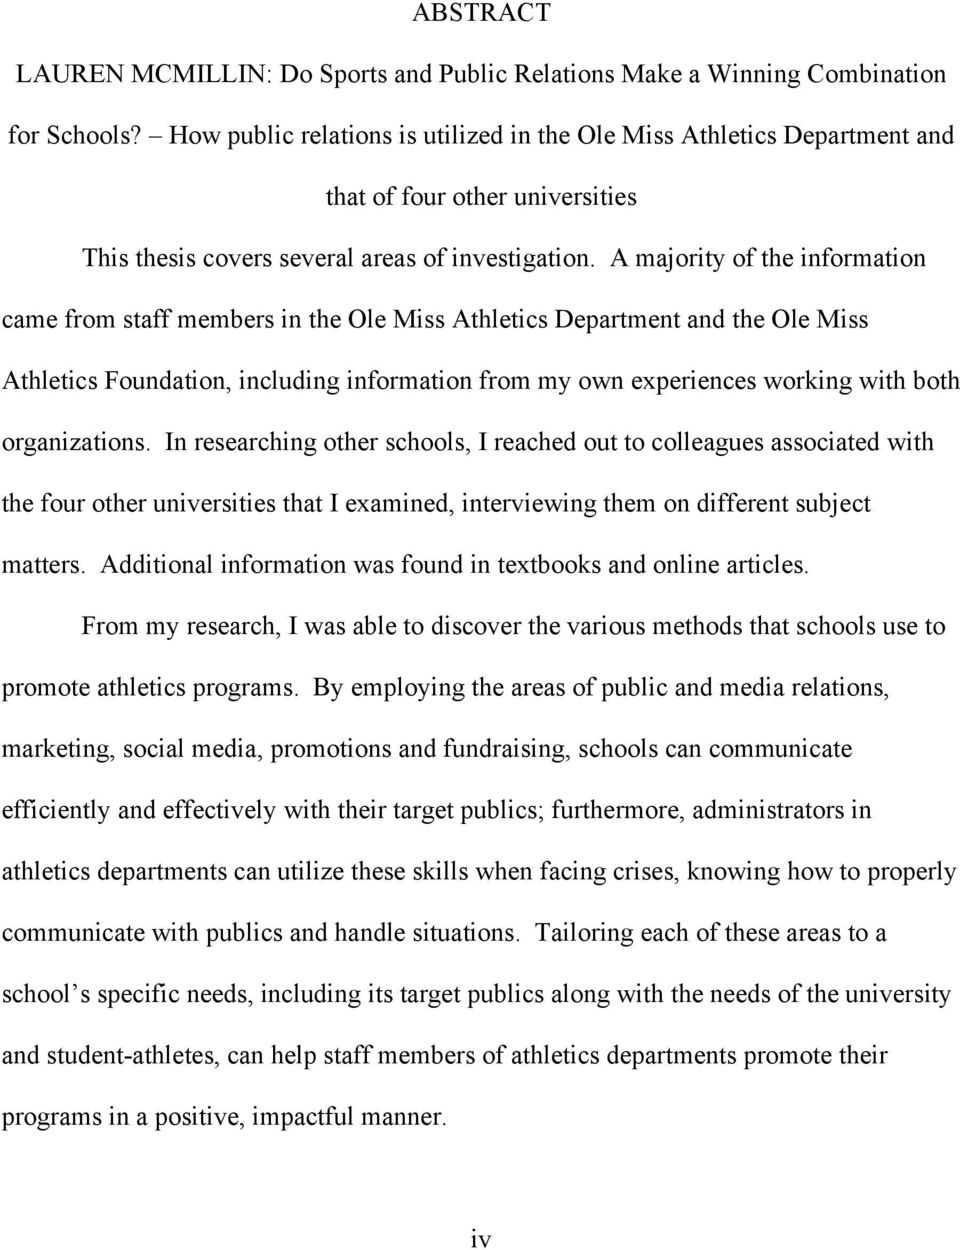 A majority of the information came from staff members in the Ole Miss Athletics Department and the Ole Miss Athletics Foundation, including information from my own experiences working with both